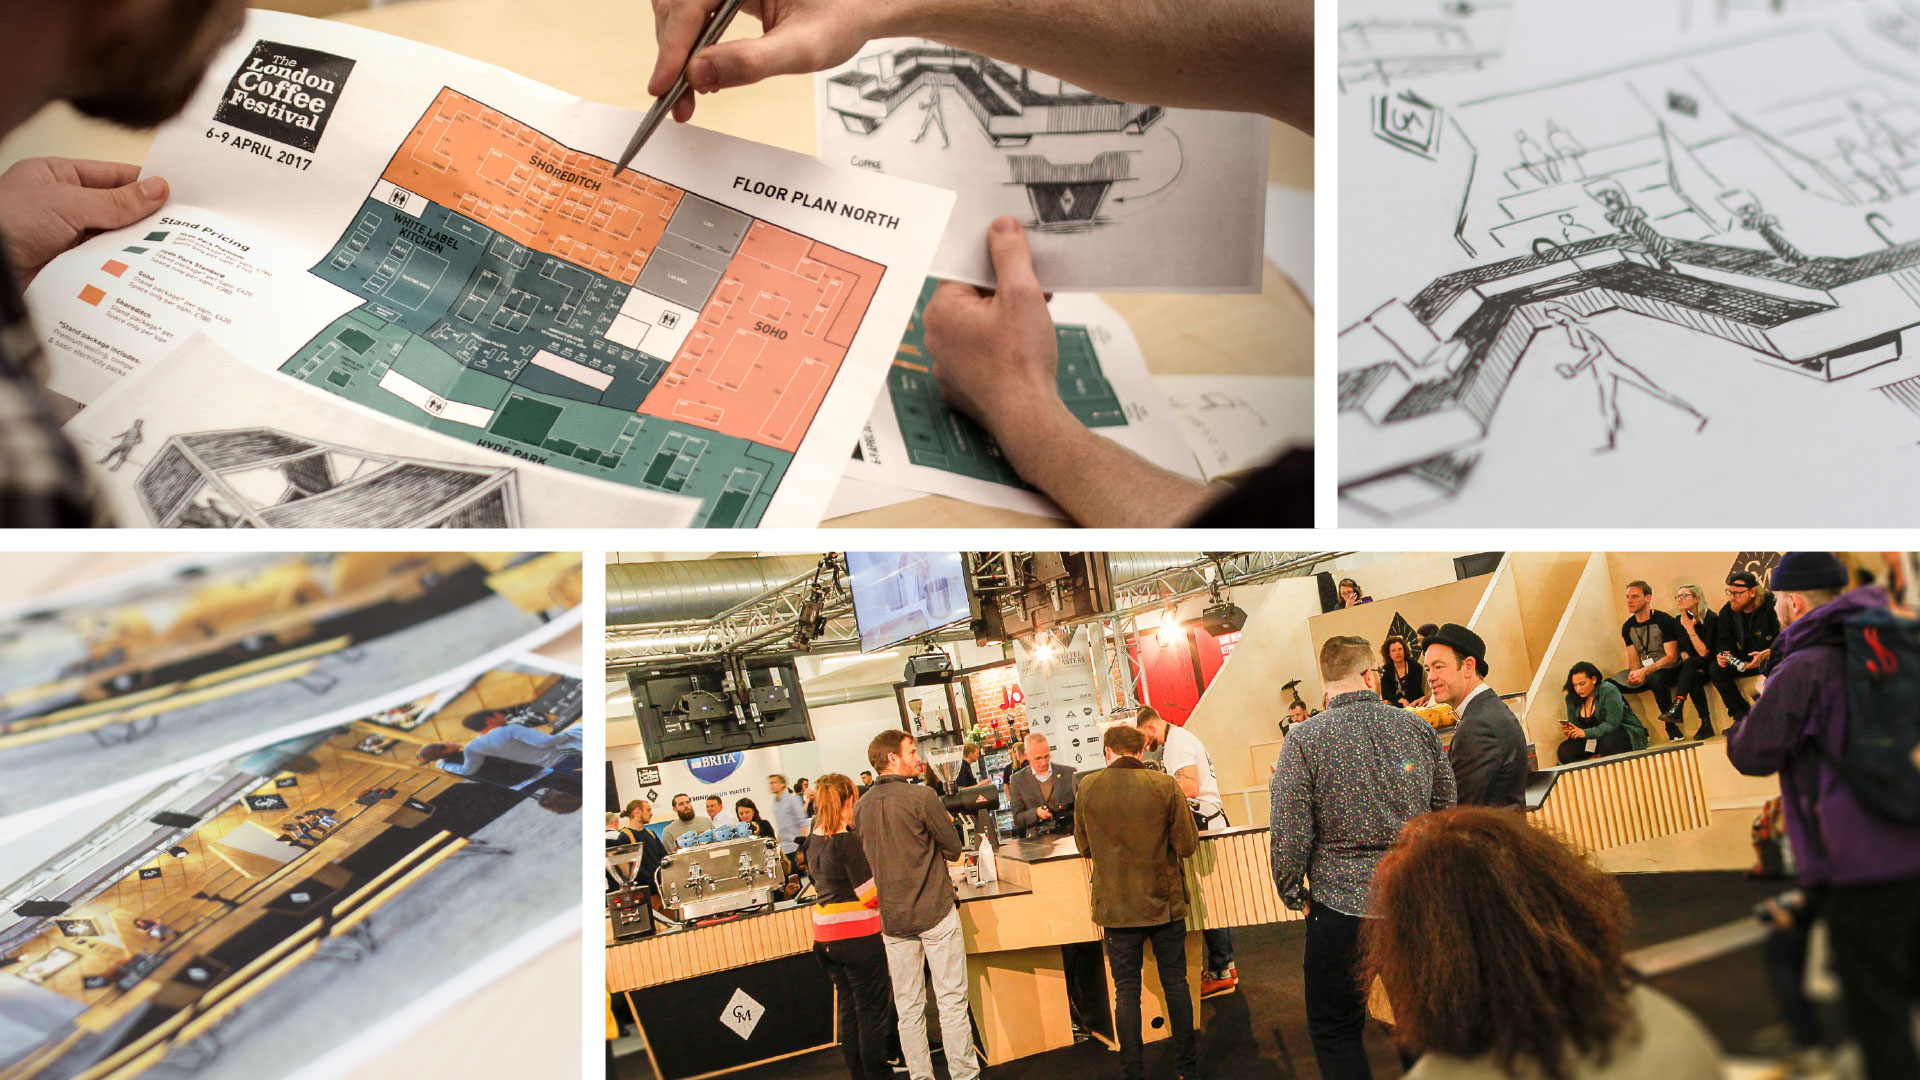 Liqui Events Design - concept to reality montage showing floor plan, sketch render and photos of - London Coffee Festival.